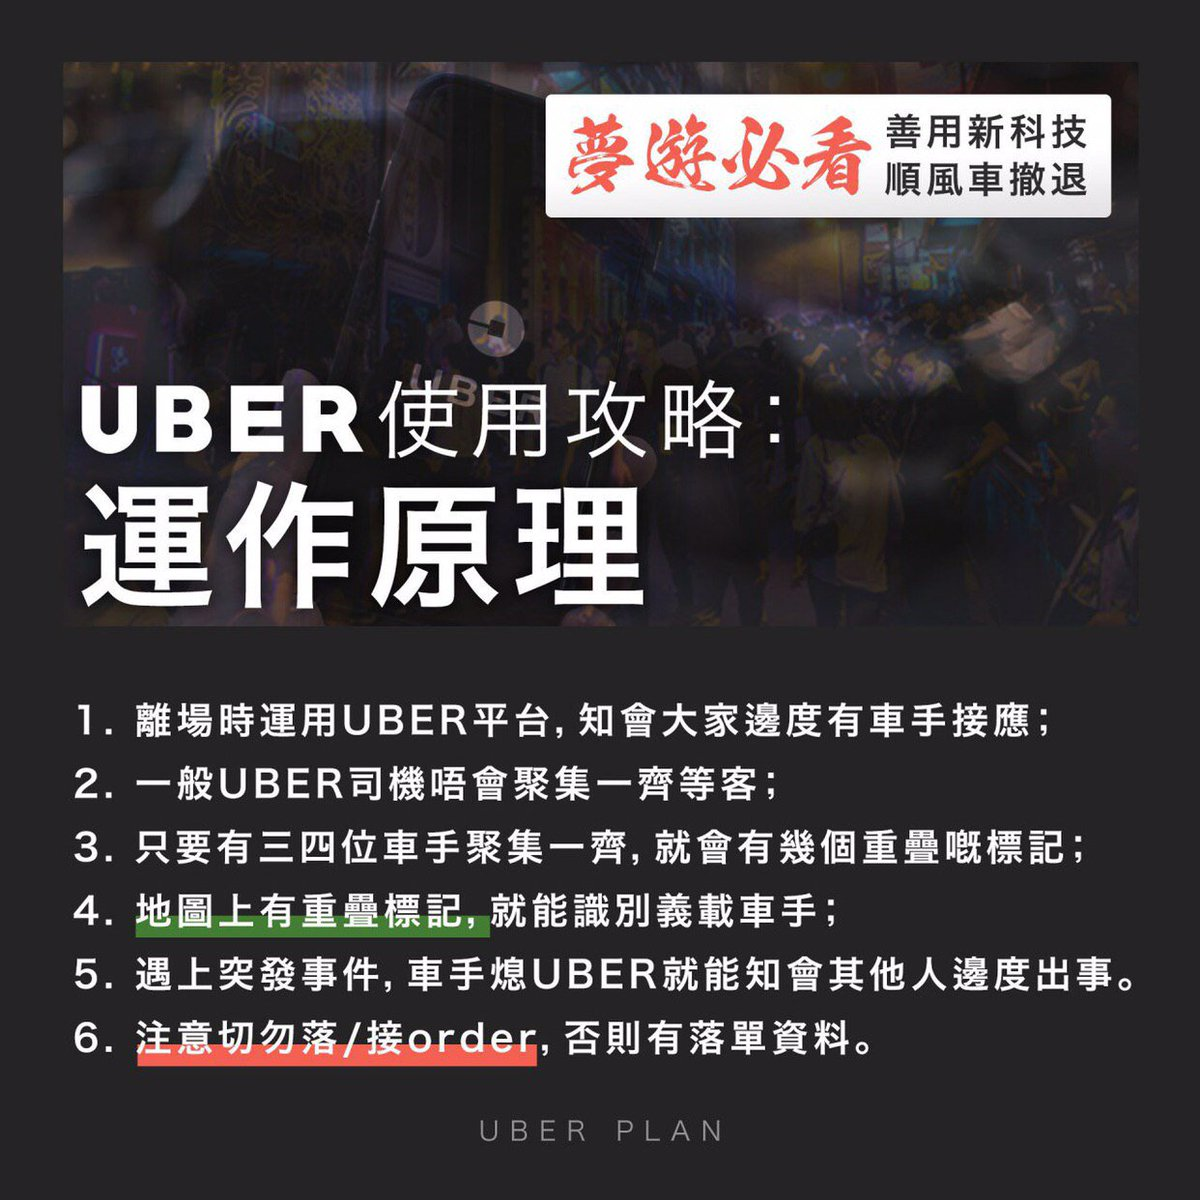 Mary Hui On Twitter Fascinated By Protesters Uber Plan Using